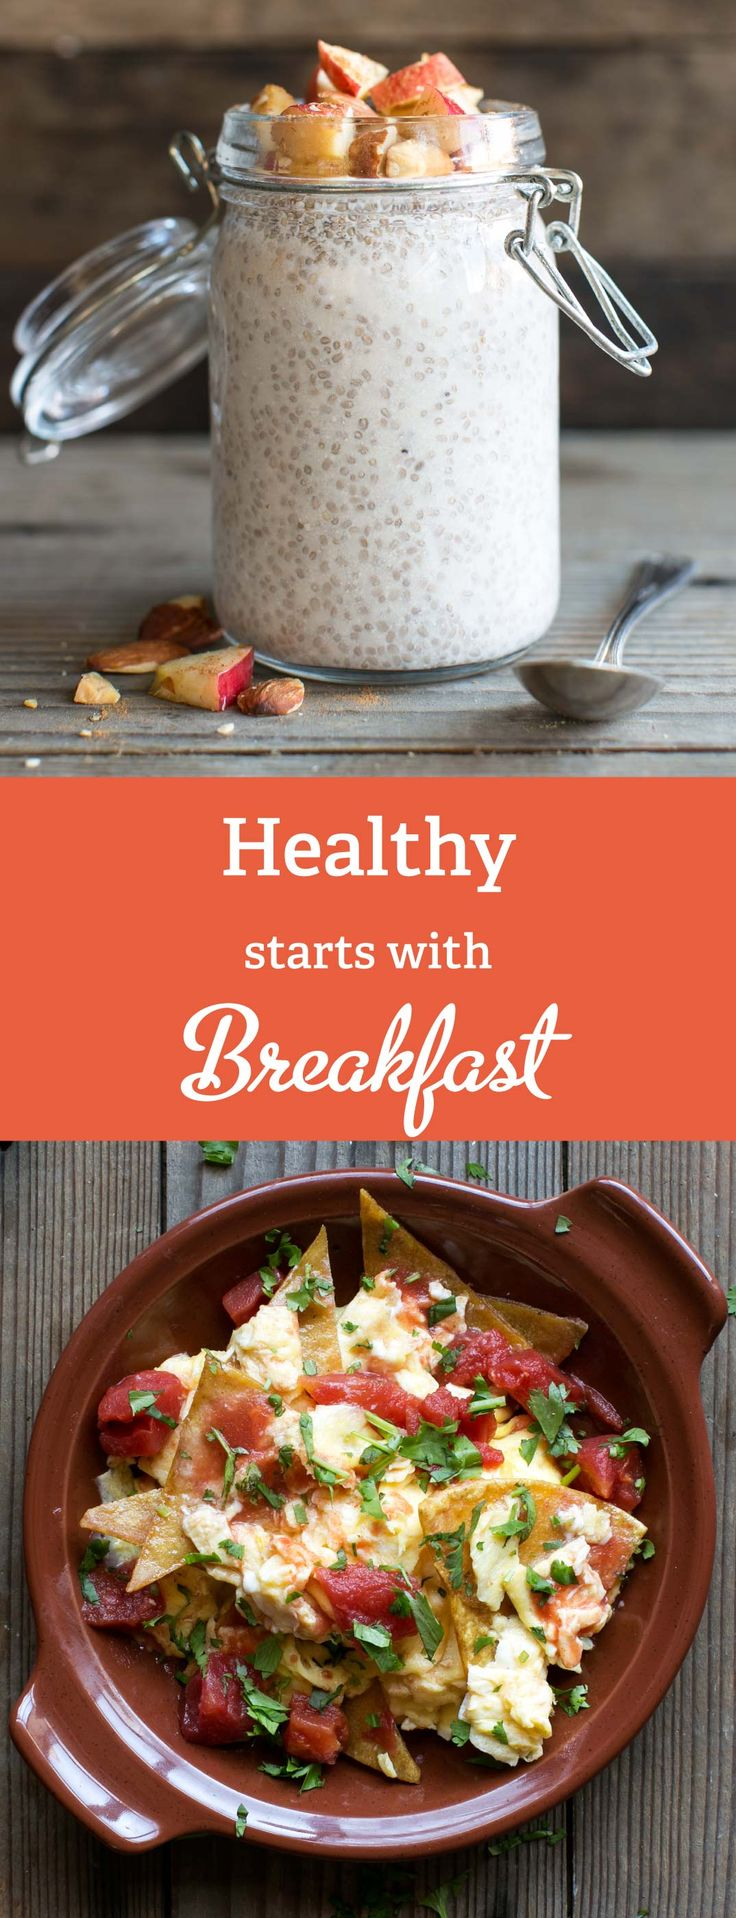 Sun Basket now features breakfast! We deliver organic ingredients and healthy recipes to your door each week. Too busy to cook 3 meals a week? Swap in 2 healthy breakfasts in place of 1 dinner recipe and start your day off right!